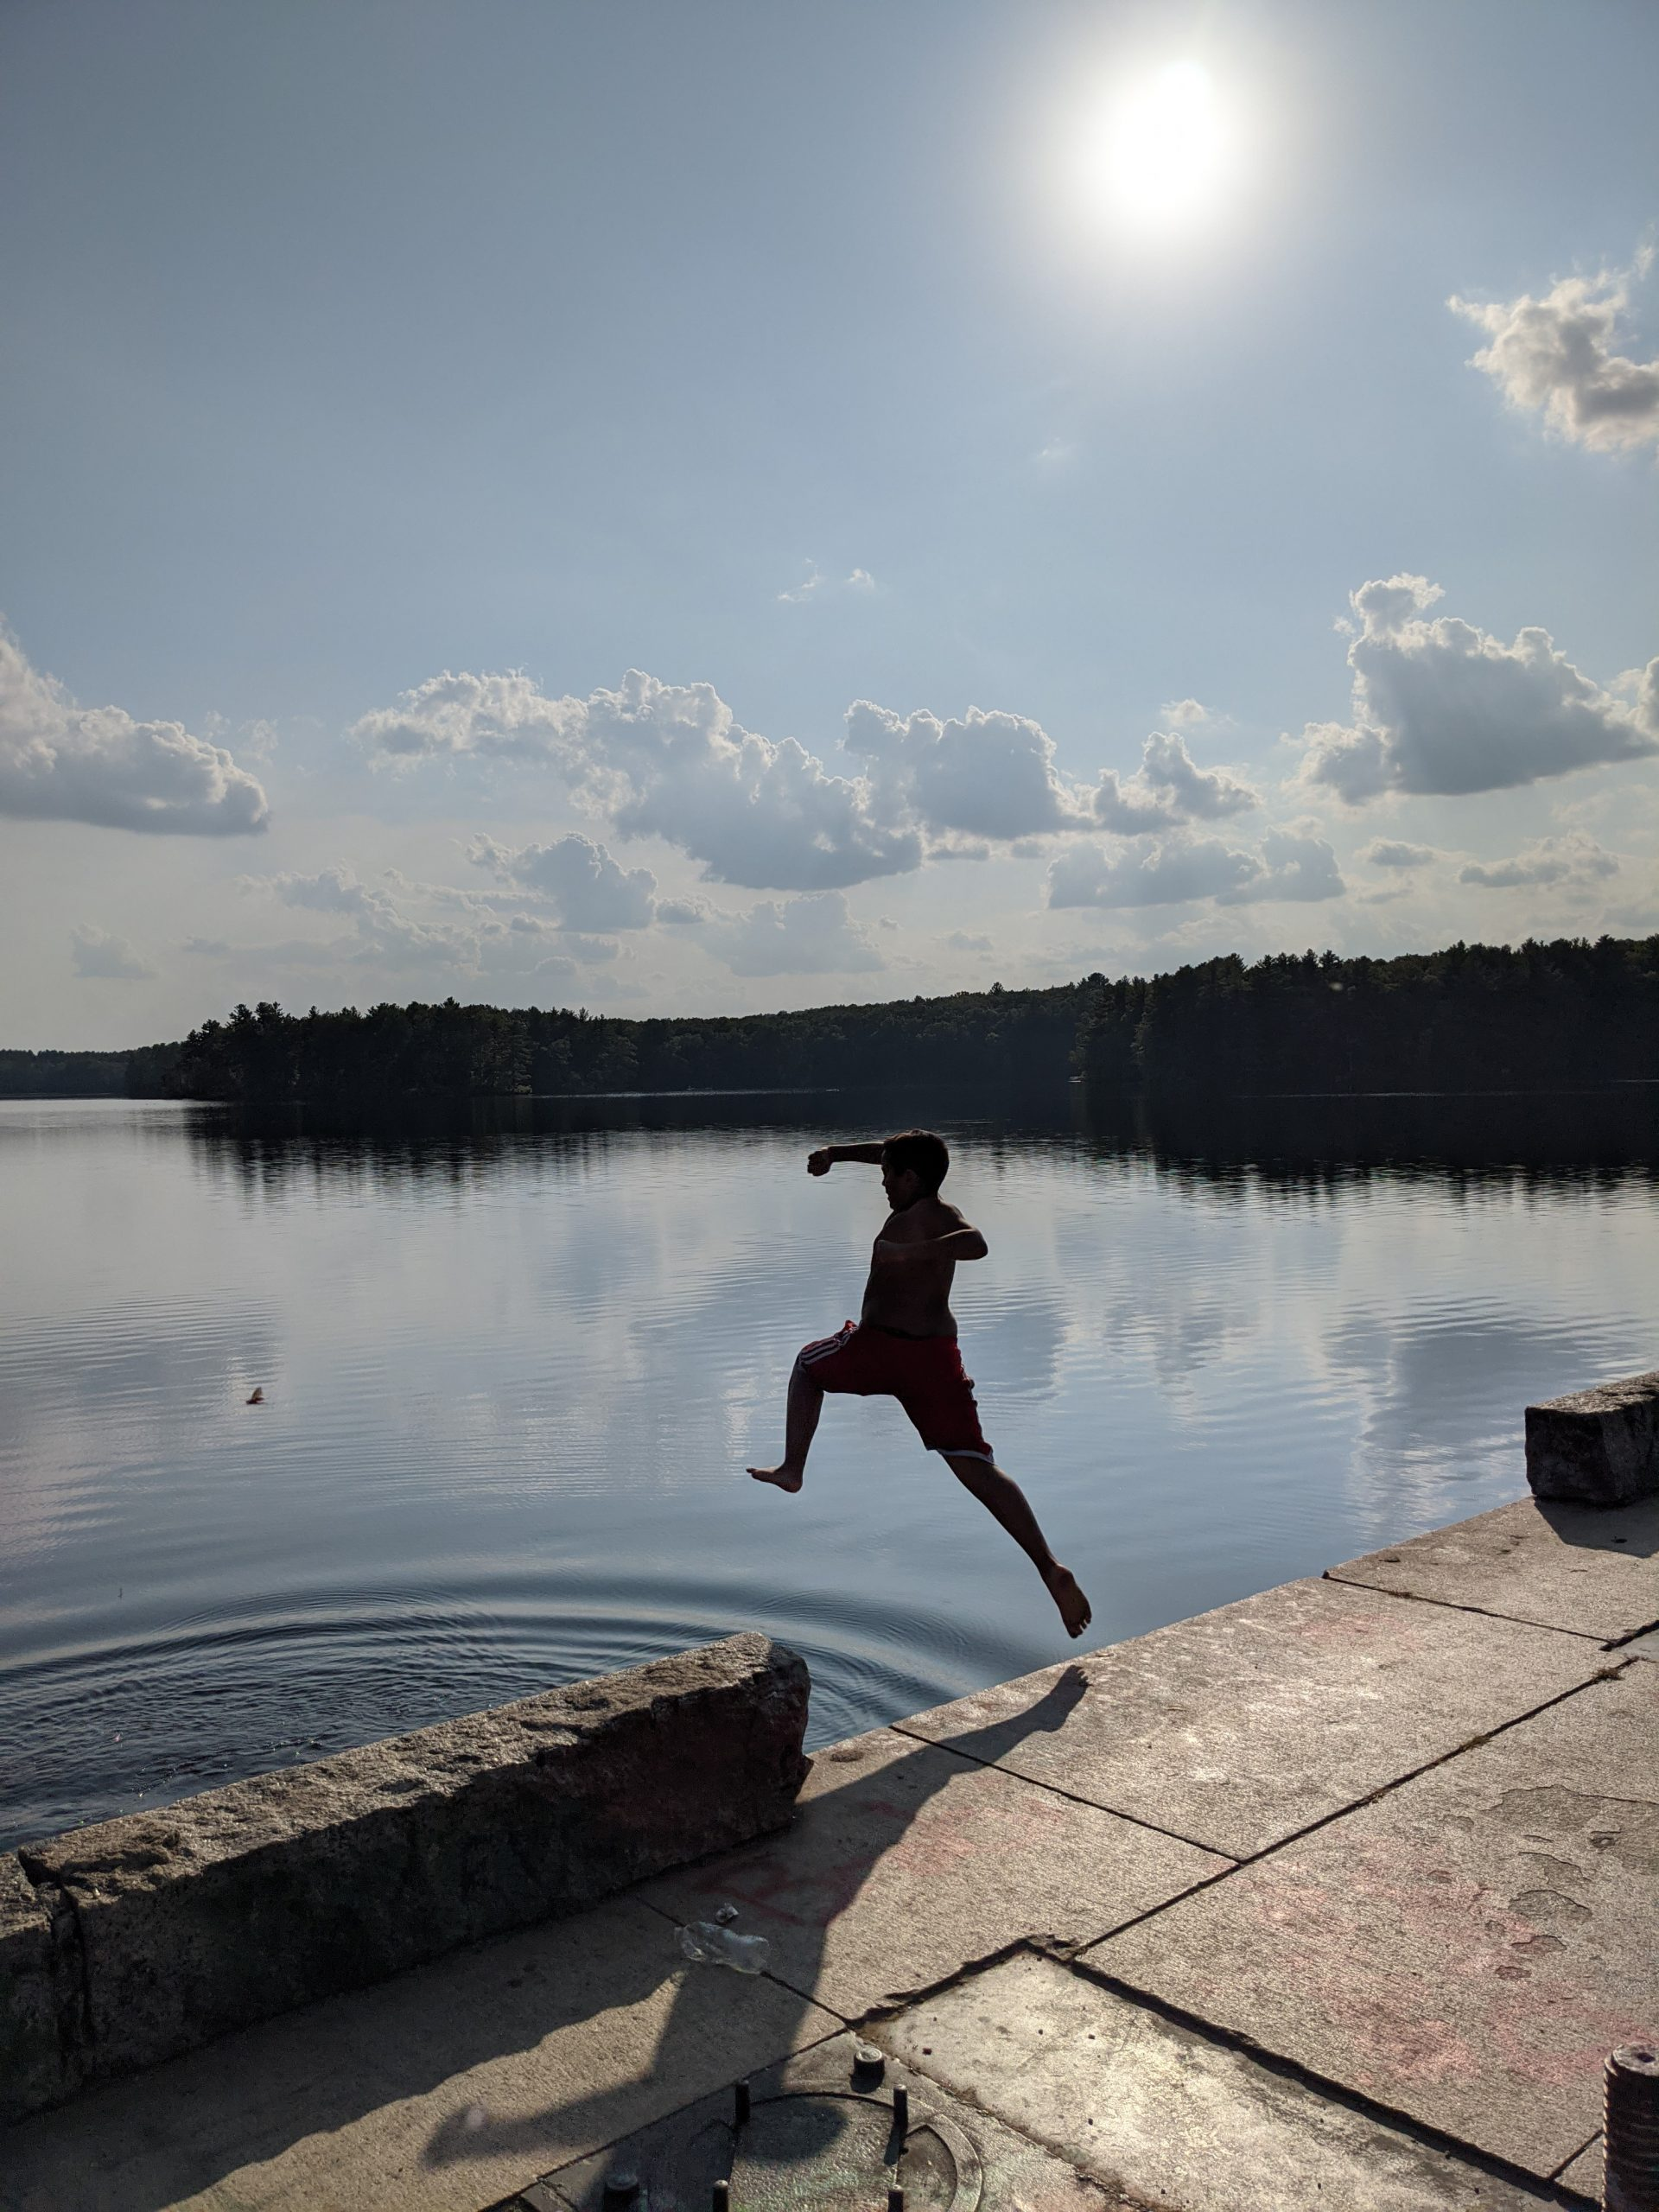 Jumping into the lake - September 2020